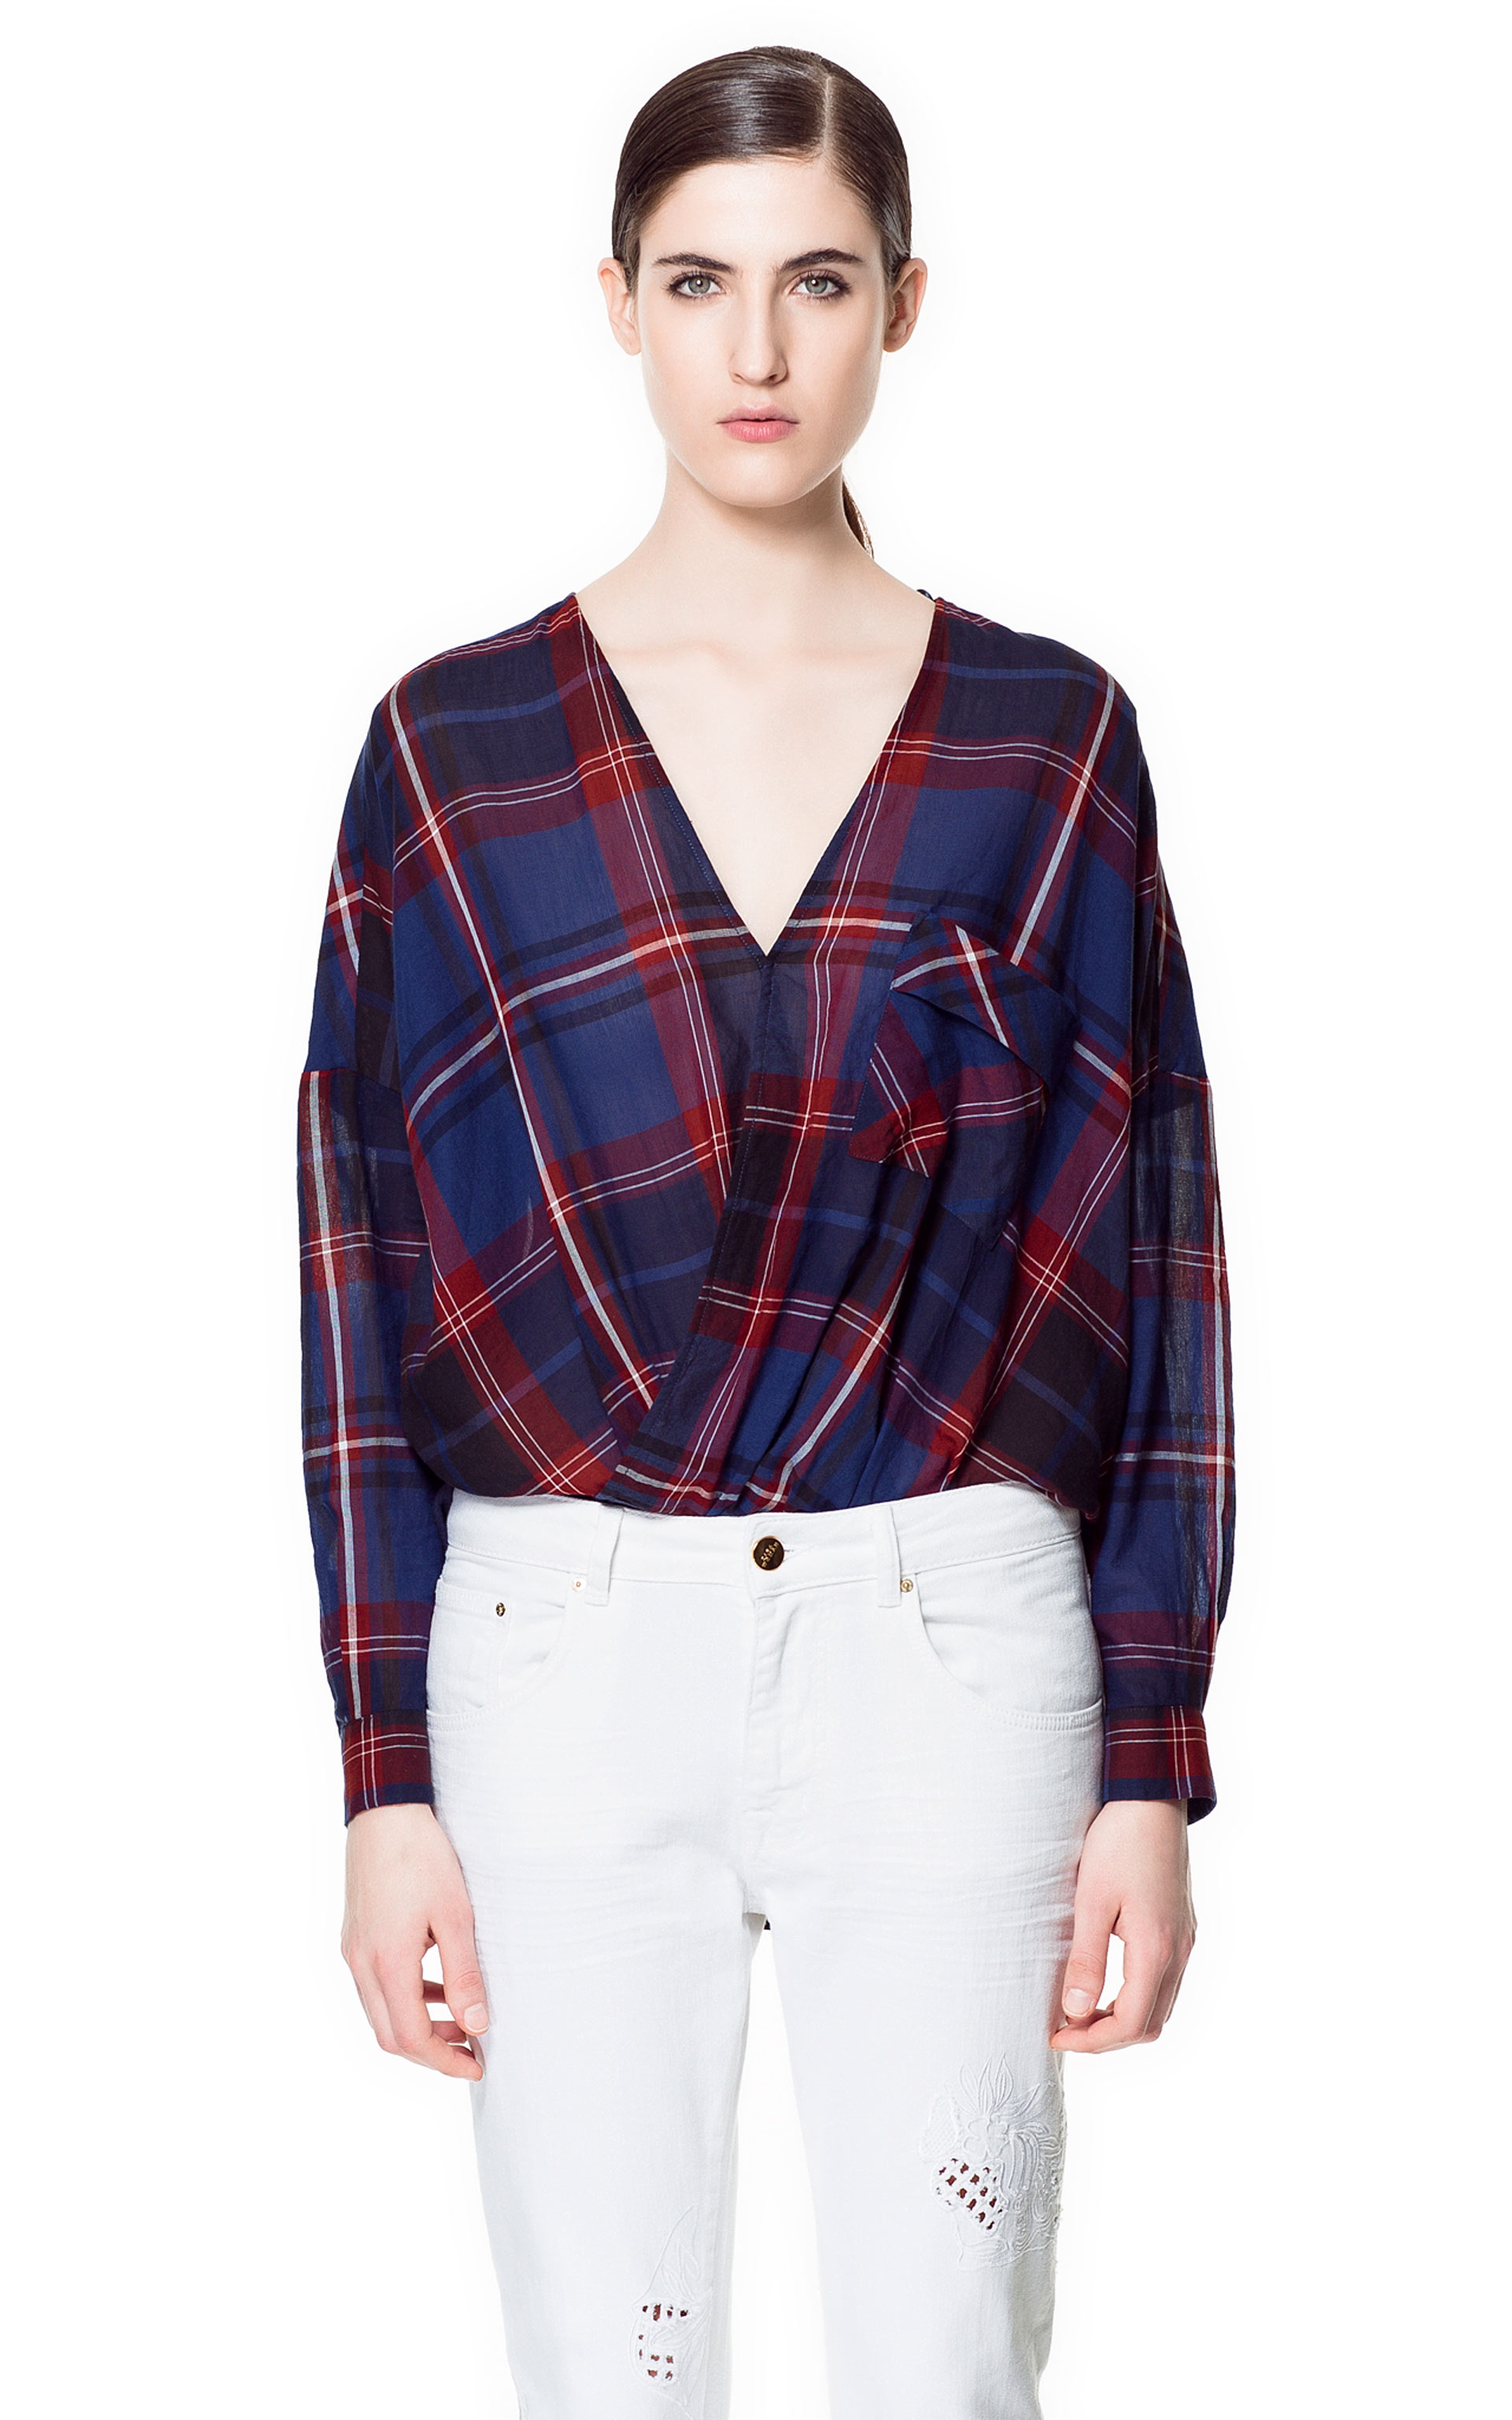 Zara's Crossover Blouse ($70) is a chic, easy way to get into the sheer plaid trend without breaking the bank. I'll be taking a cue from the Dries Van Noten Spring runway show and styling this top with a sequined pencil skirt and pointy-toe pumps. — Britt Stephens